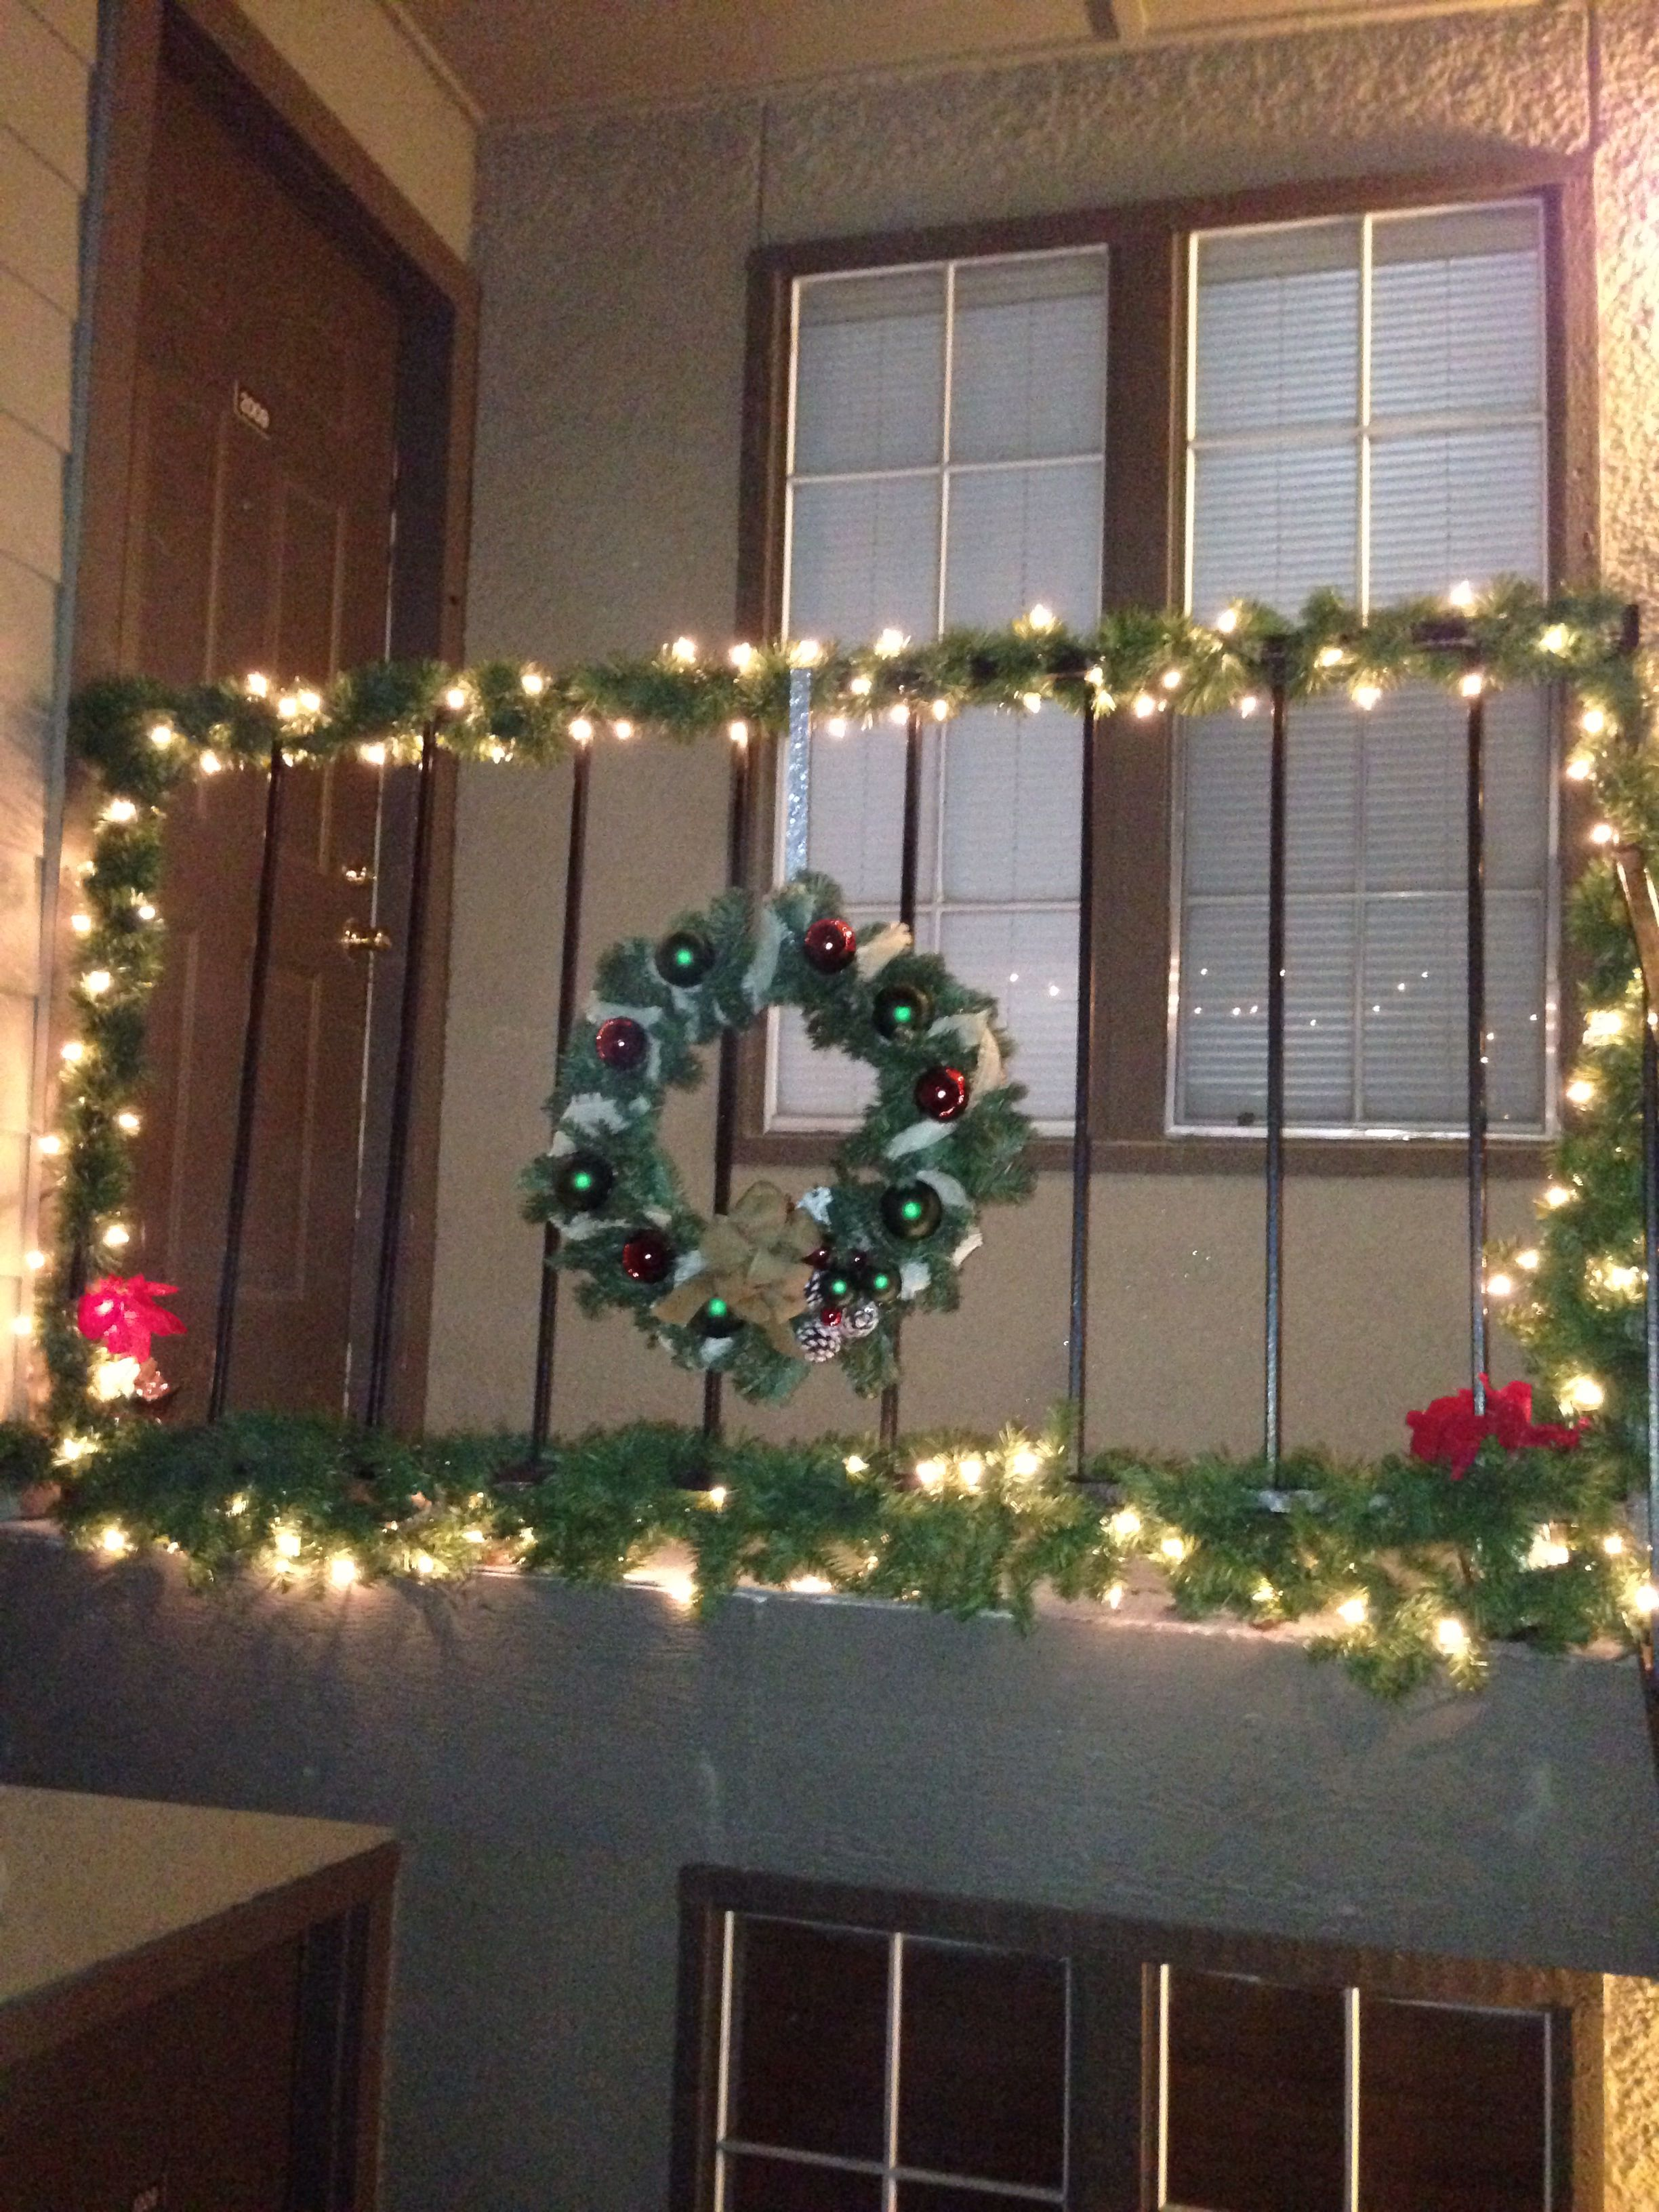 Small Space Decorations: Ideas For Outside Christmas Decor For Condo Or  Apartment DYI : Railing